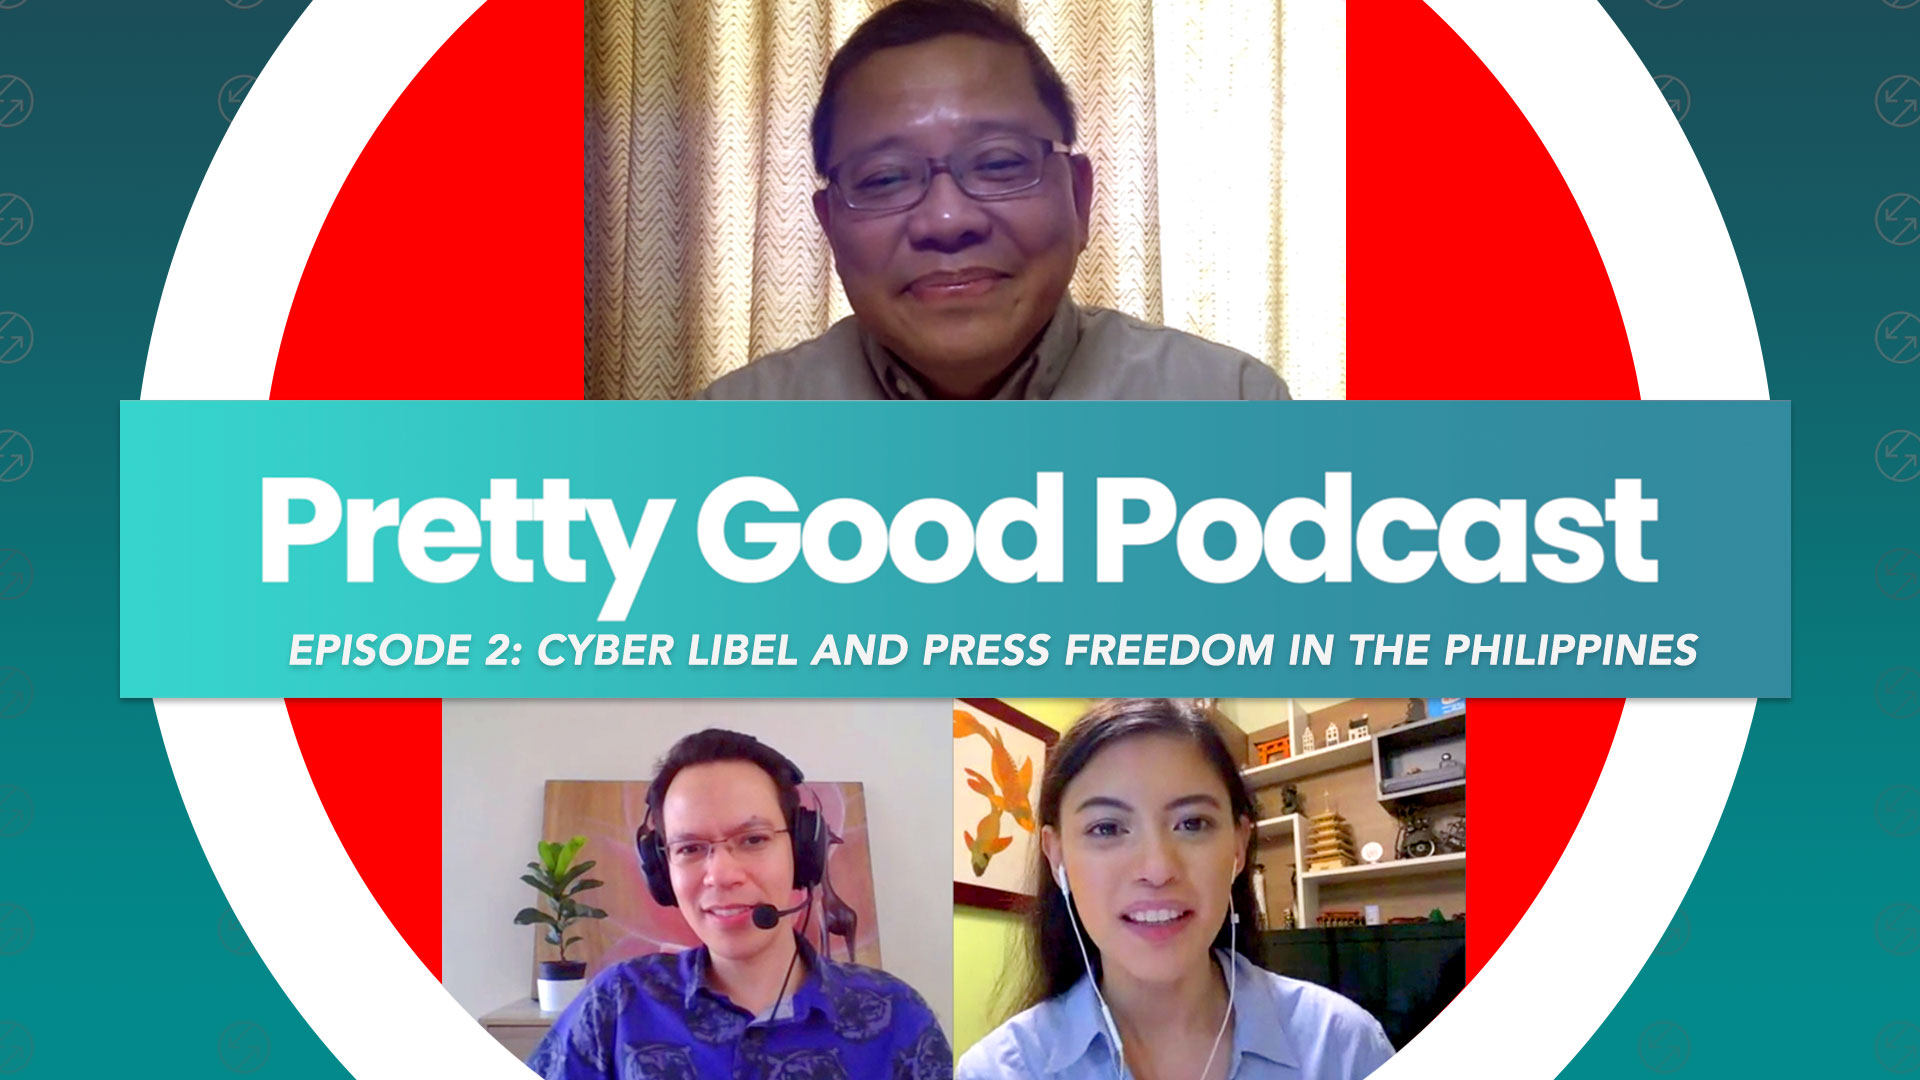 Pretty Good Podcast Episode 2: Cyber libel and press freedom in the Philippines